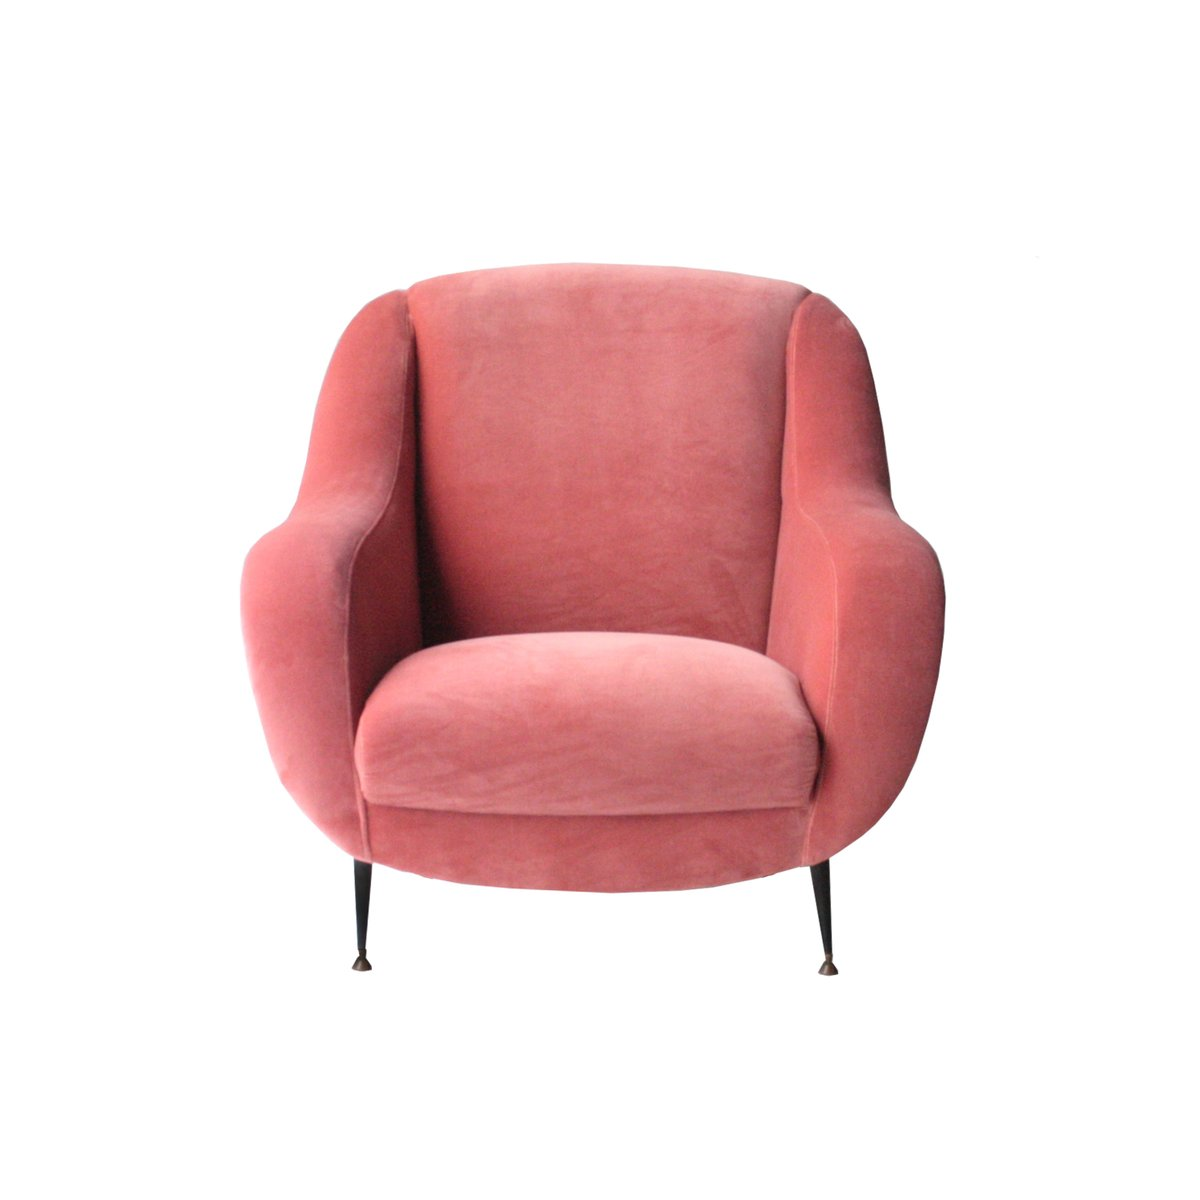 velvet armchair pink outdoor reclining lounge chair with ottoman 1950s for sale at pamono